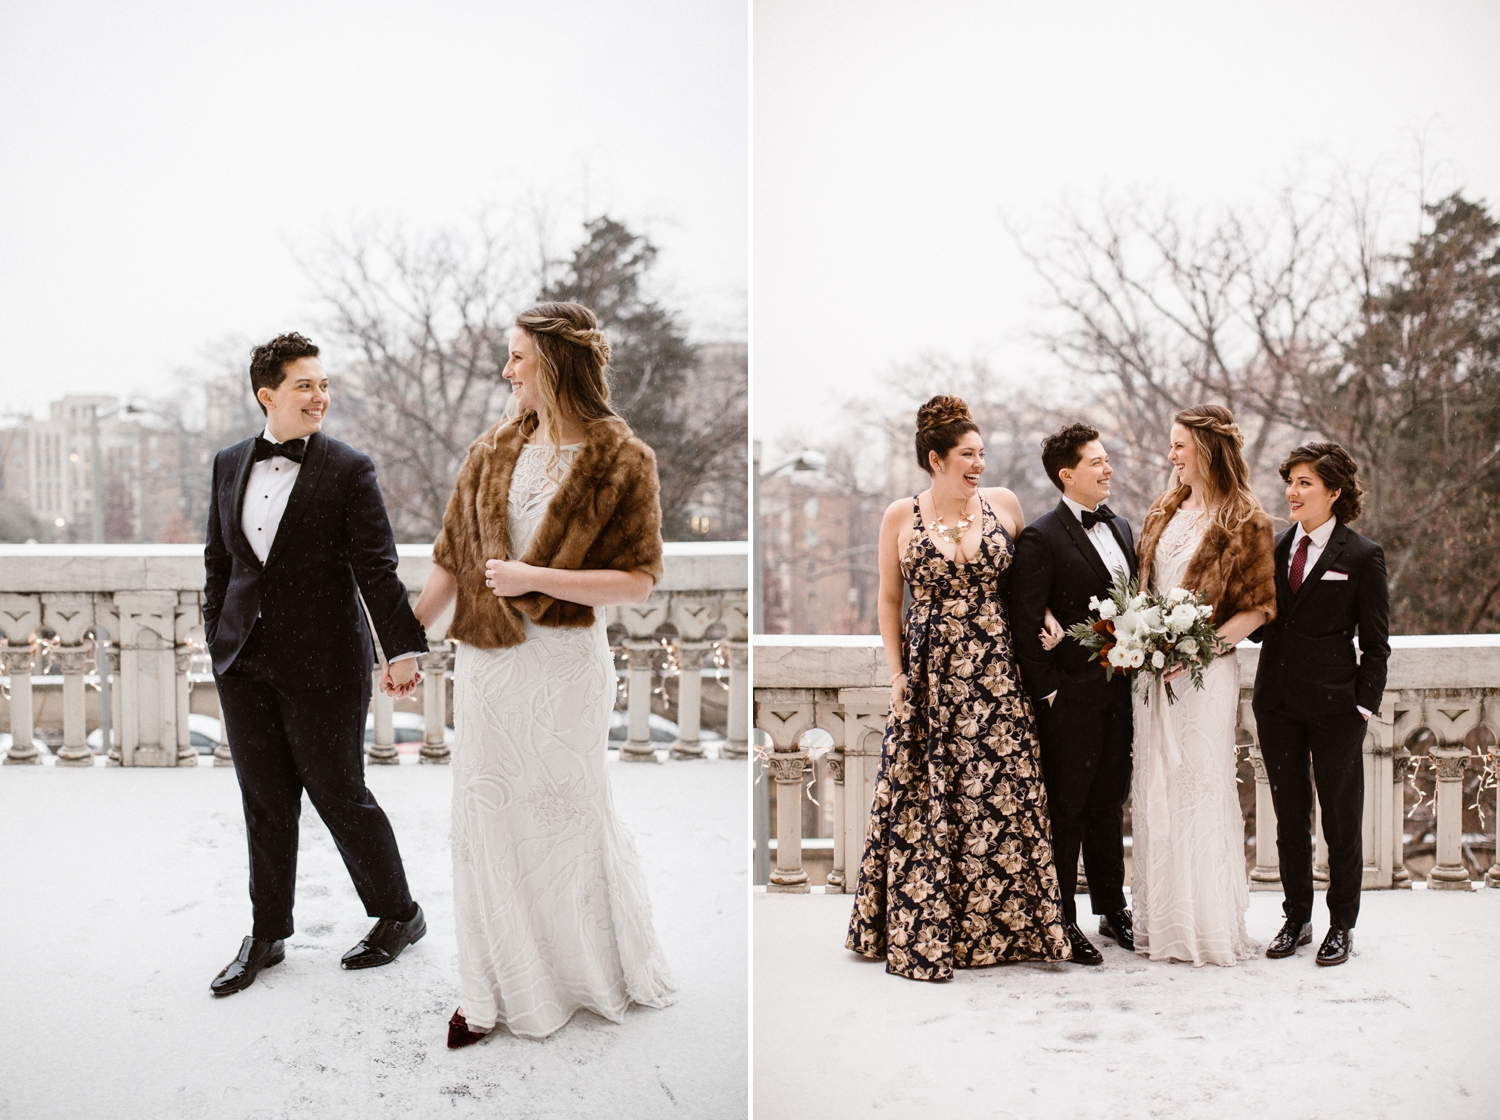 mason-and-rook-first-look-rooftop-josephine-butler-parks-wedding-photographer 89.jpg